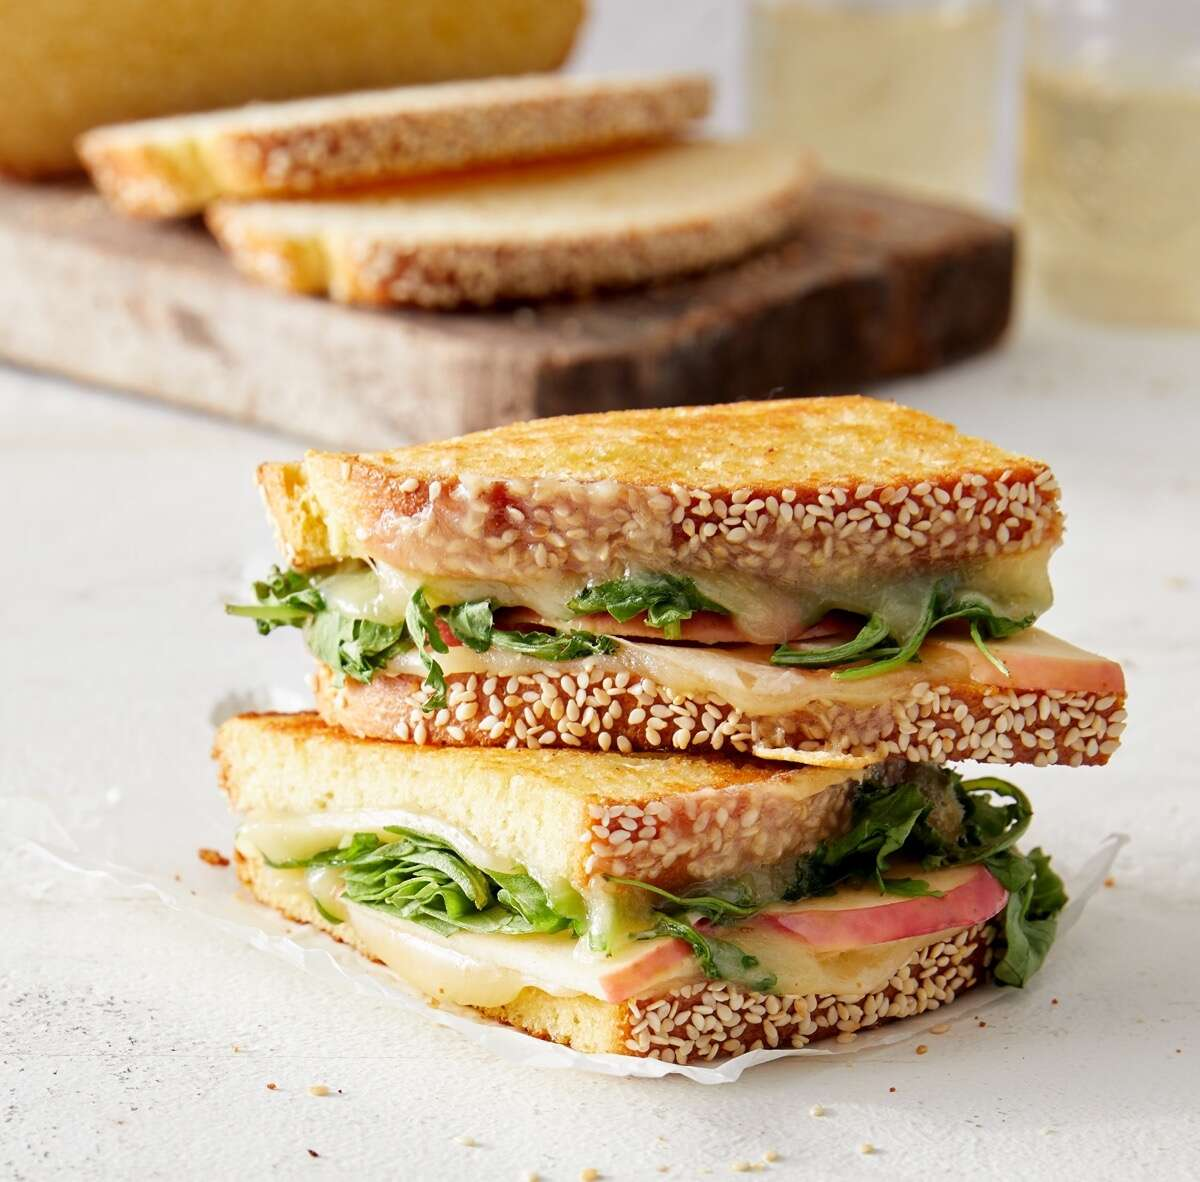 Grilled apple, cheddar, and arugula sandwich on Semolina Sandwich Bread